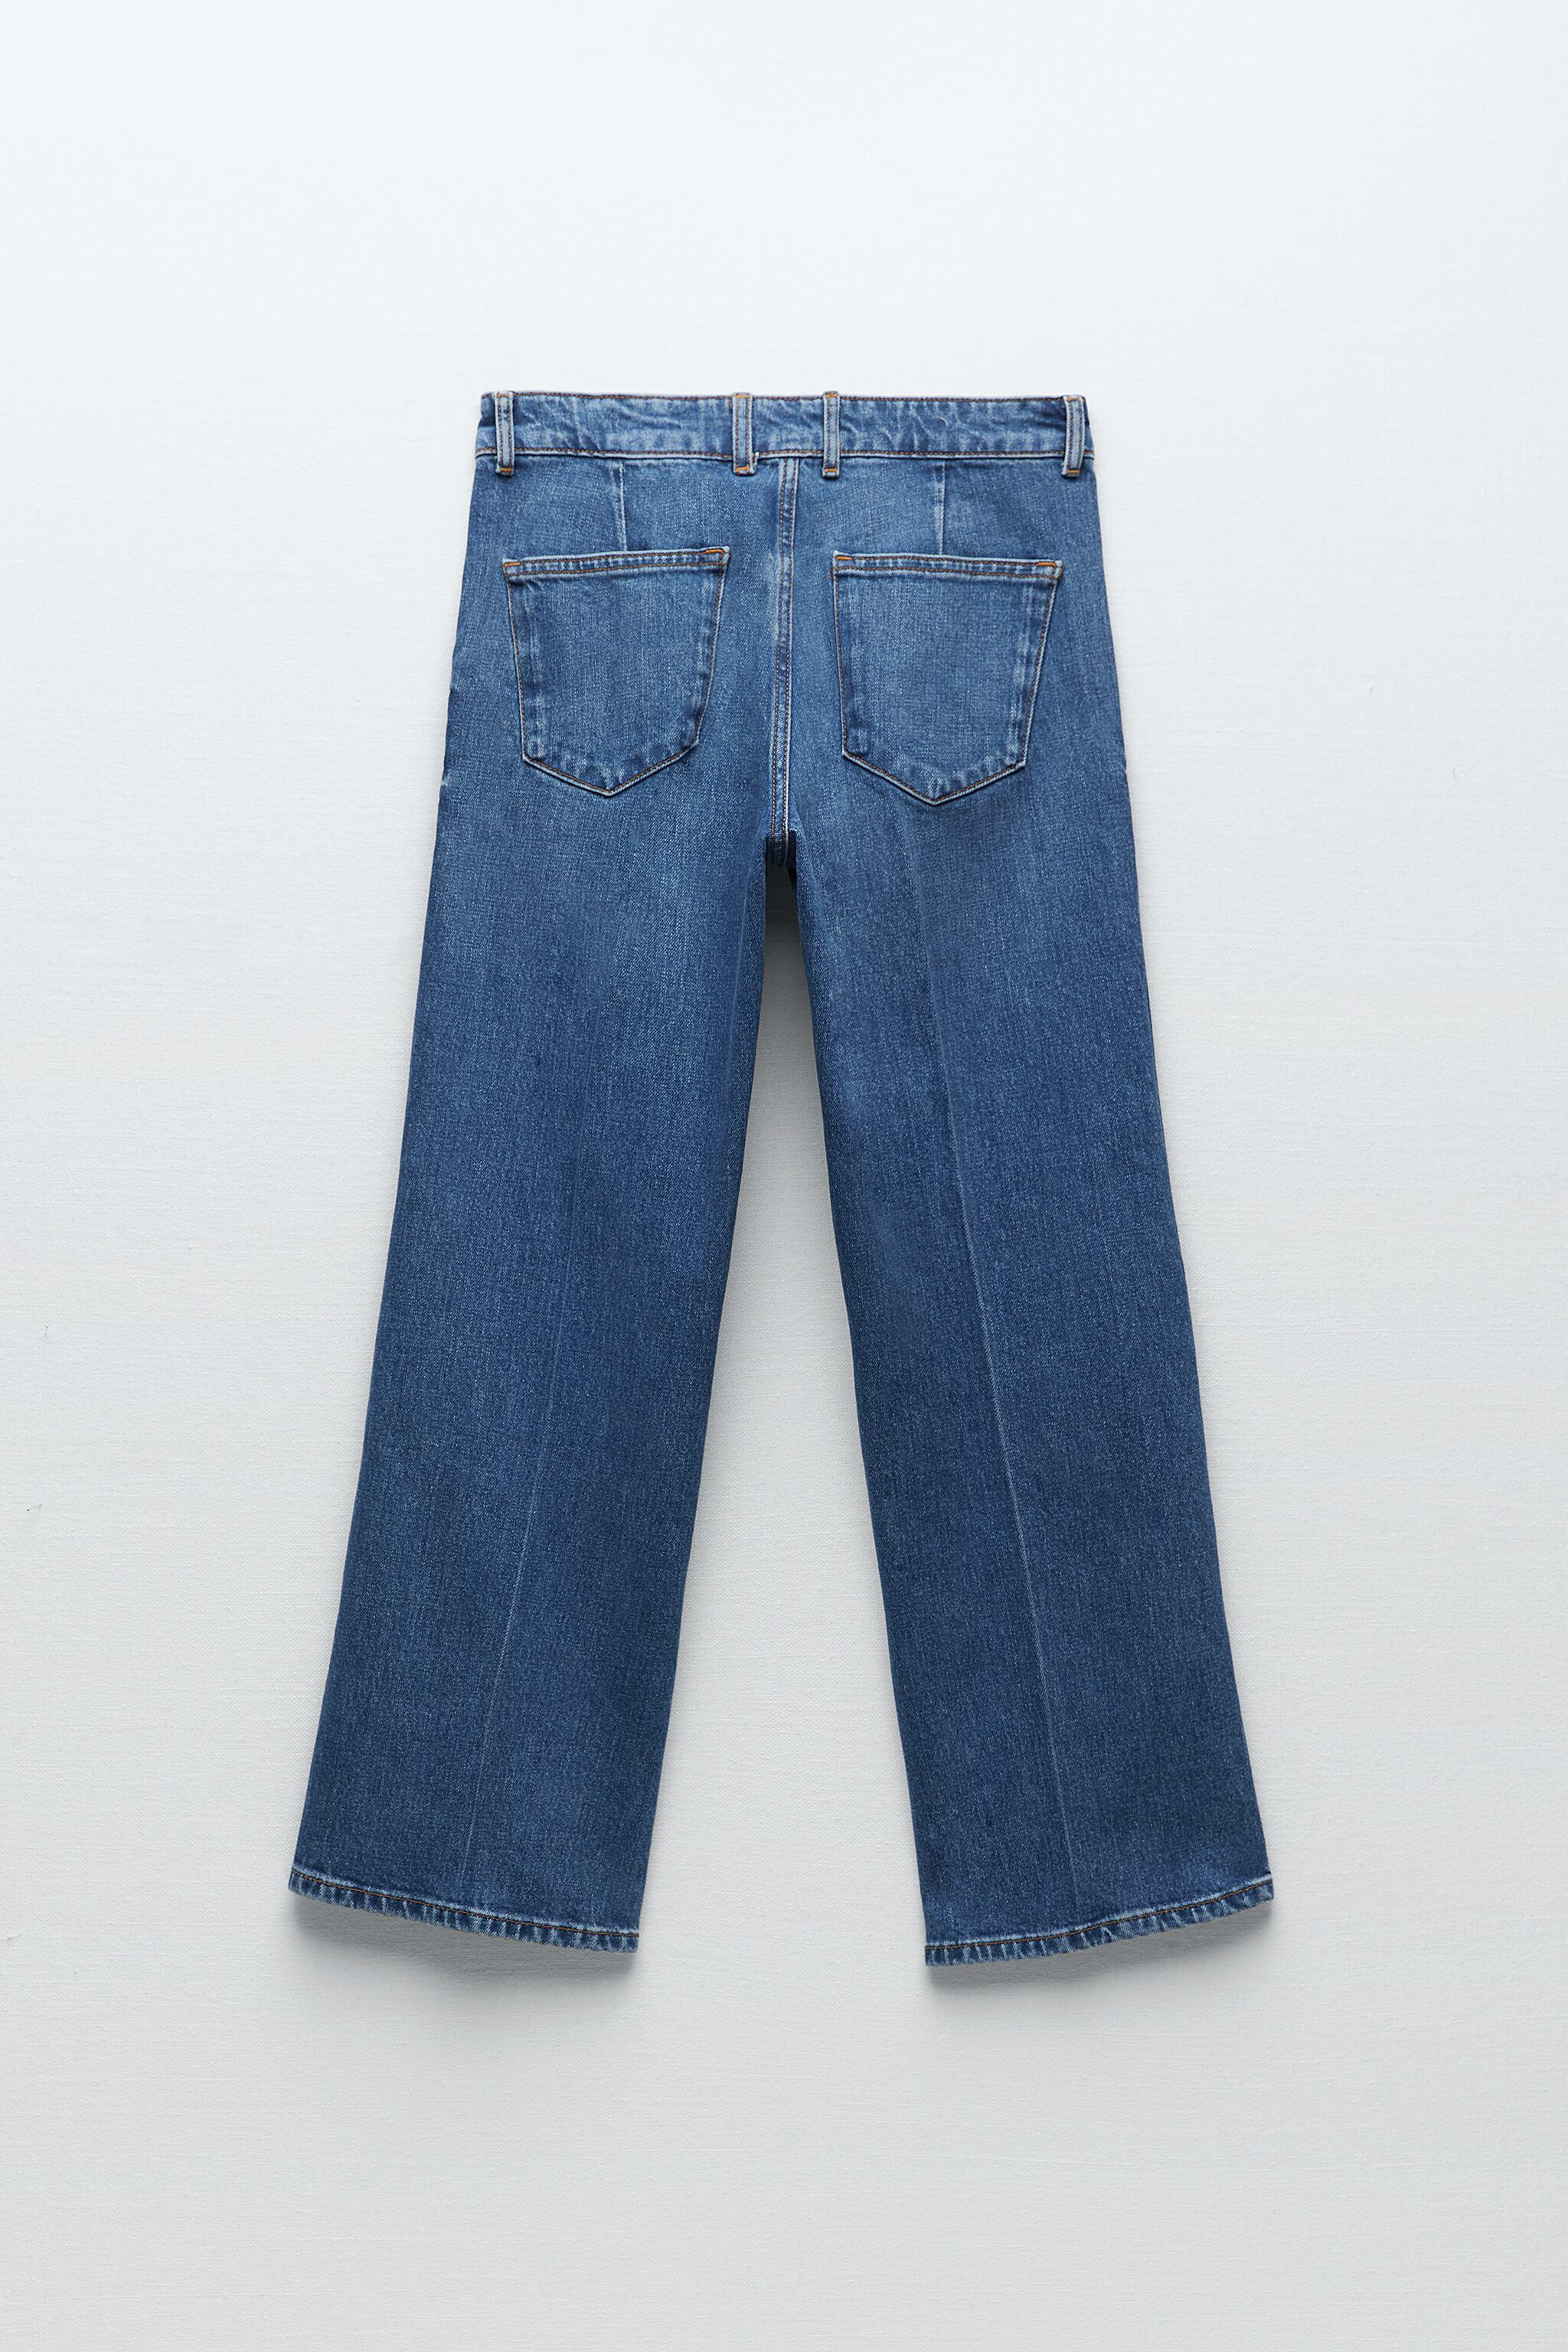 ZW THE NESS CROPPED FLARE JEANS 6